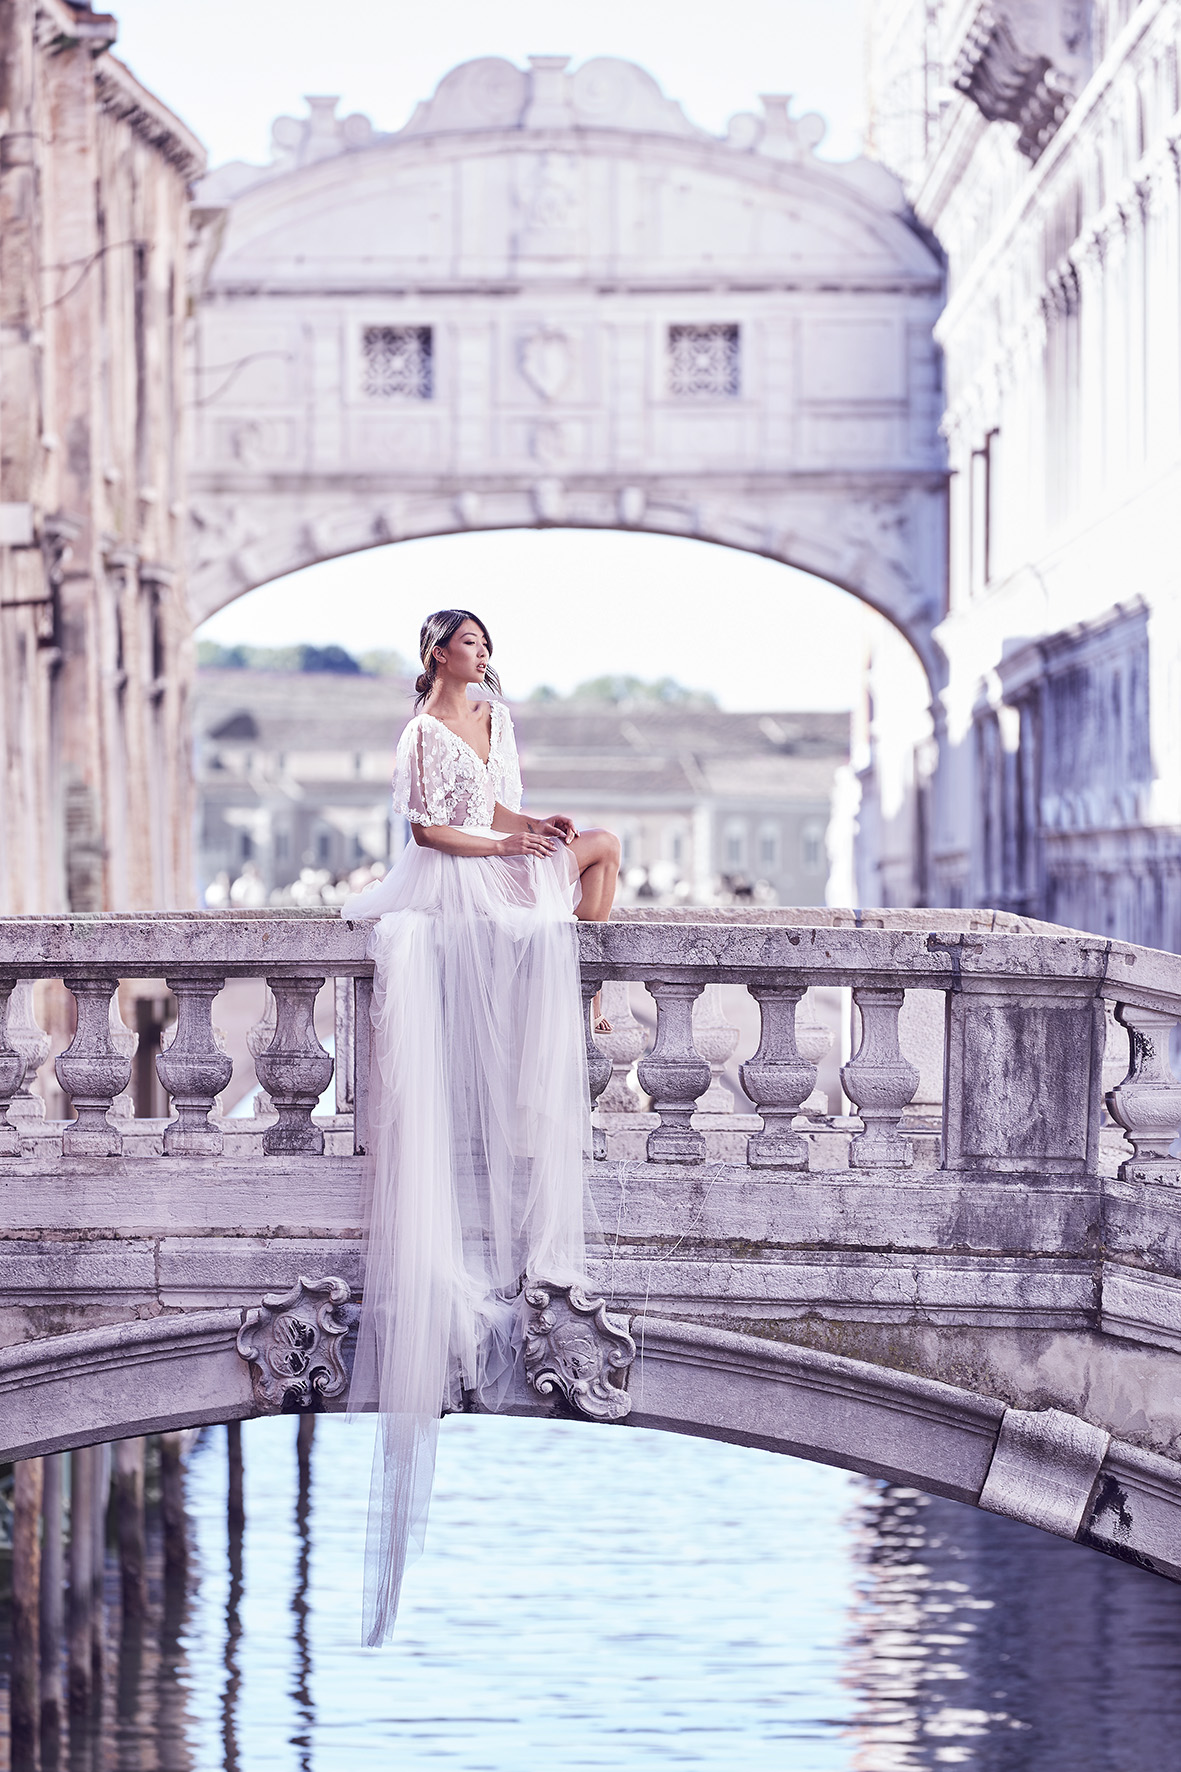 Bridge of sighs wedding photo by Lost In Love Photography